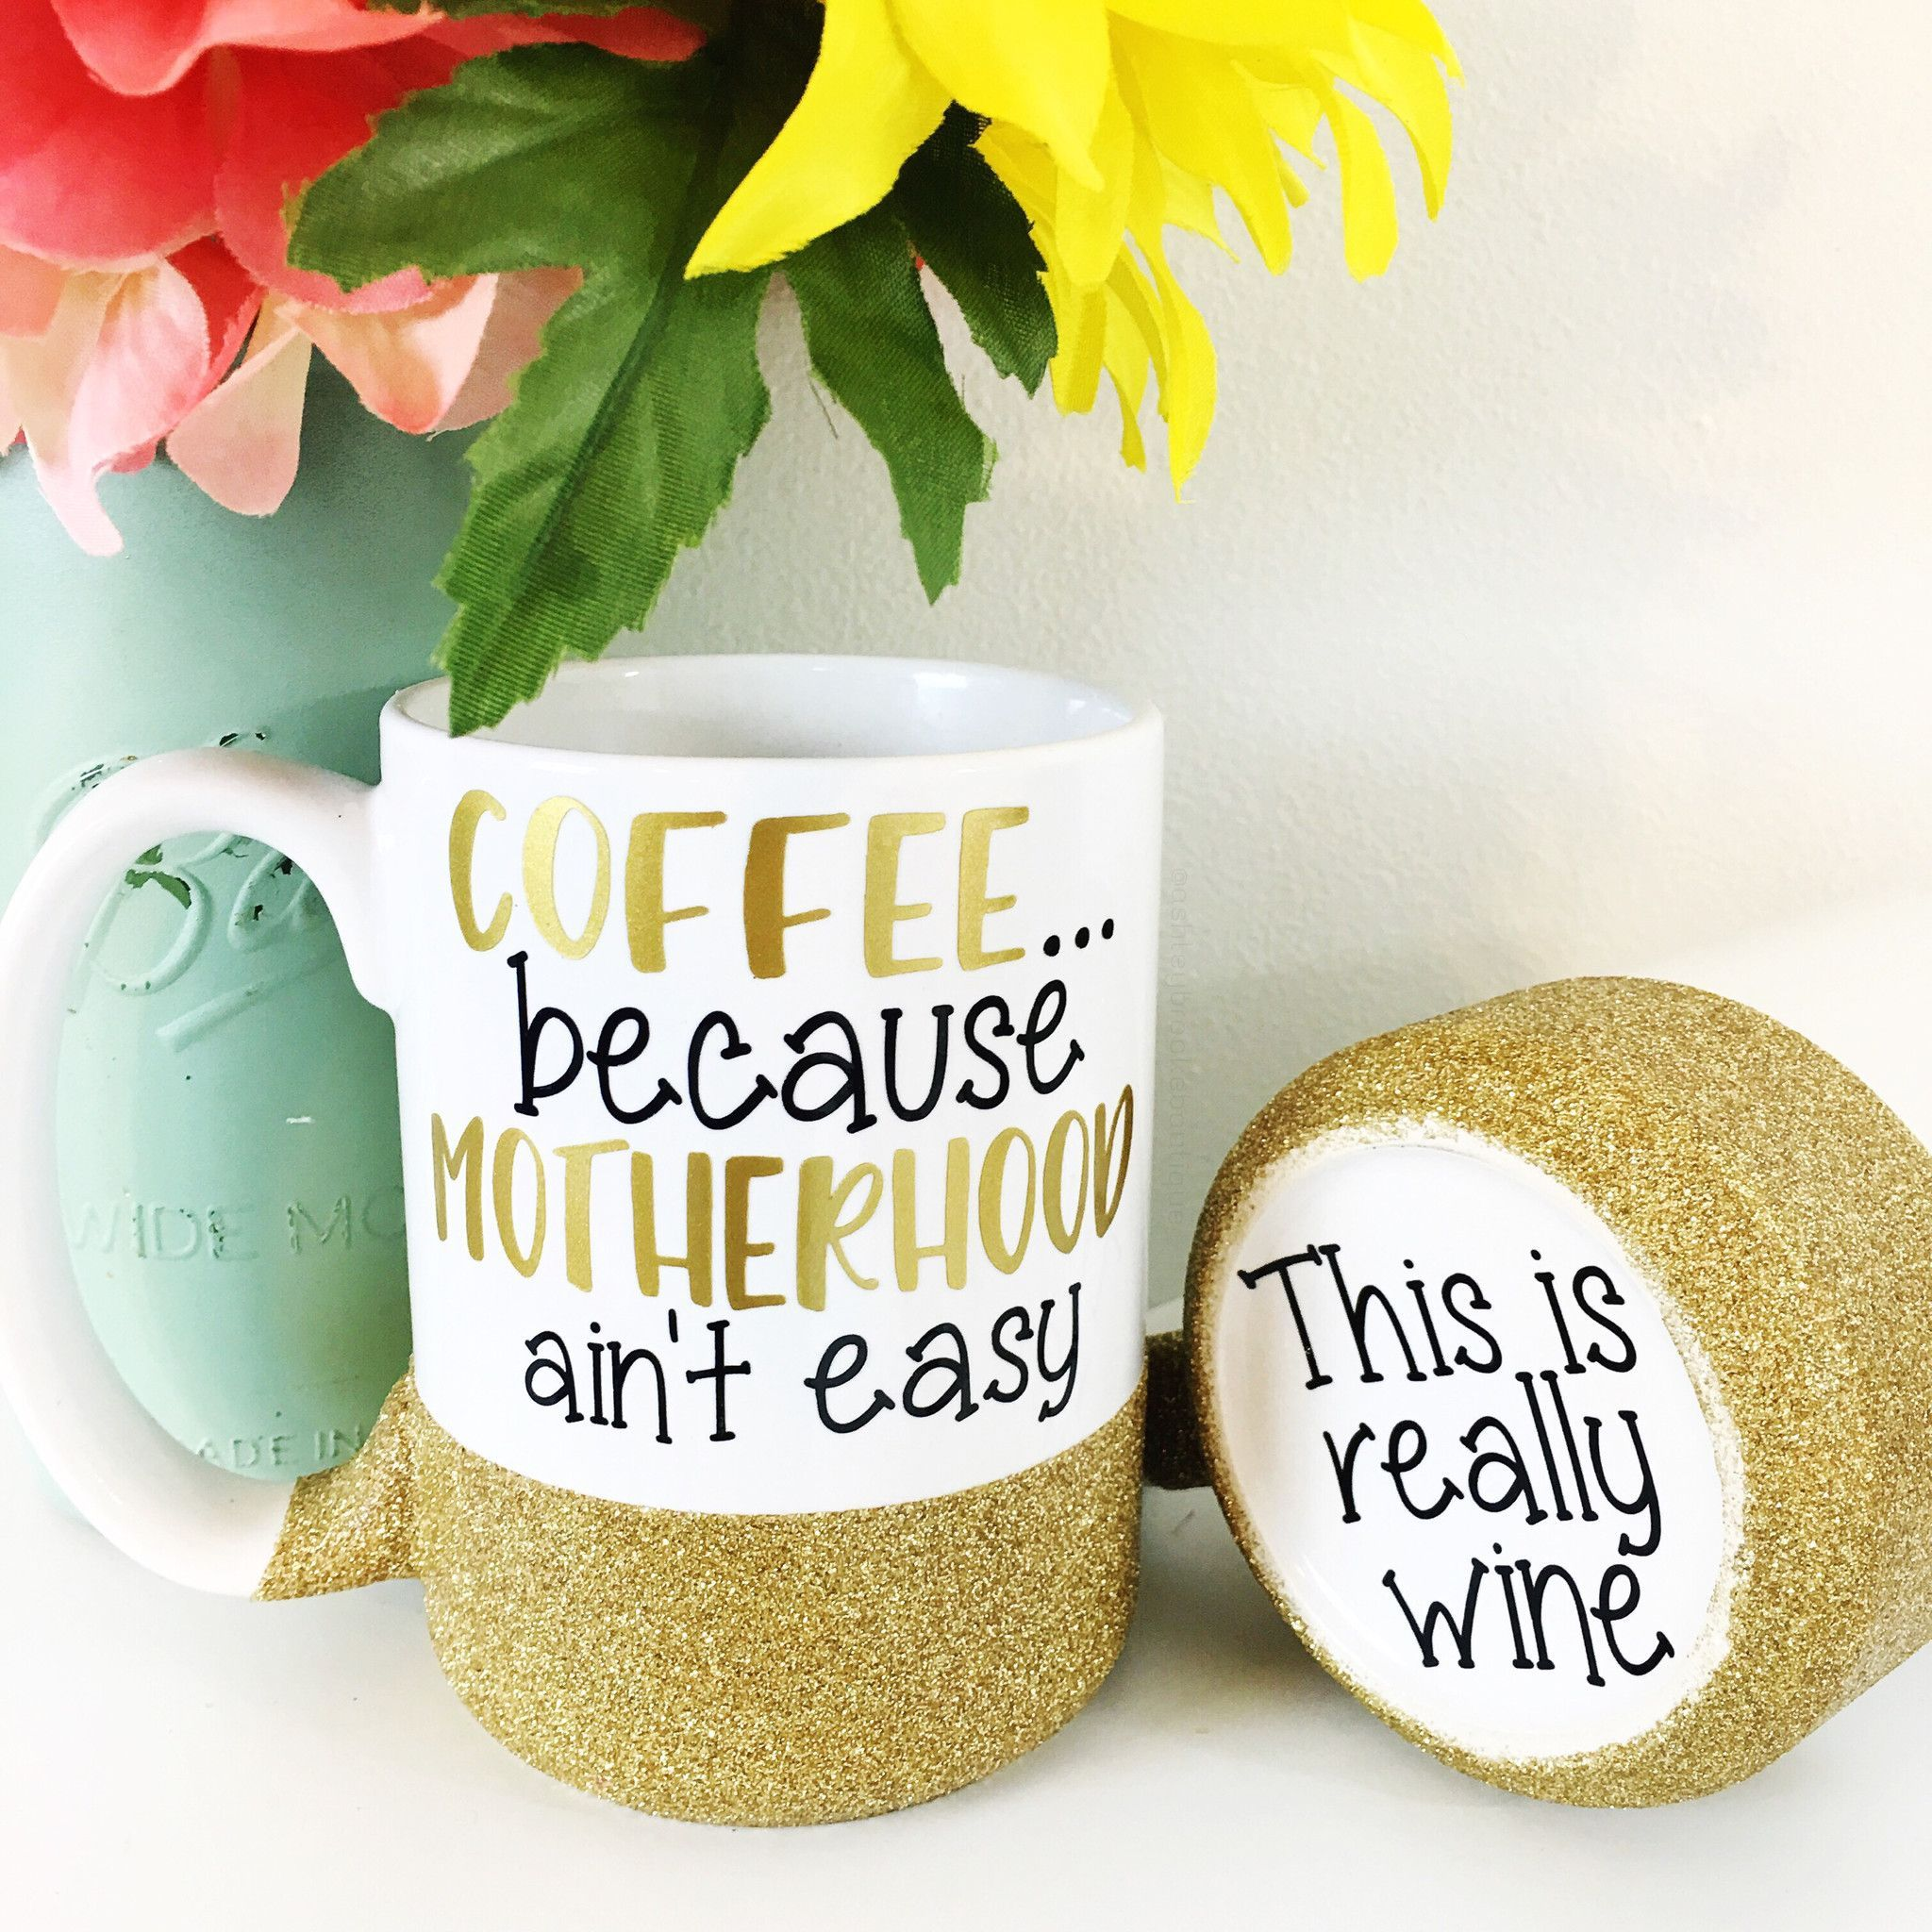 COFFEE... because MOTHERHOOD ain't easy - Coffee Mug